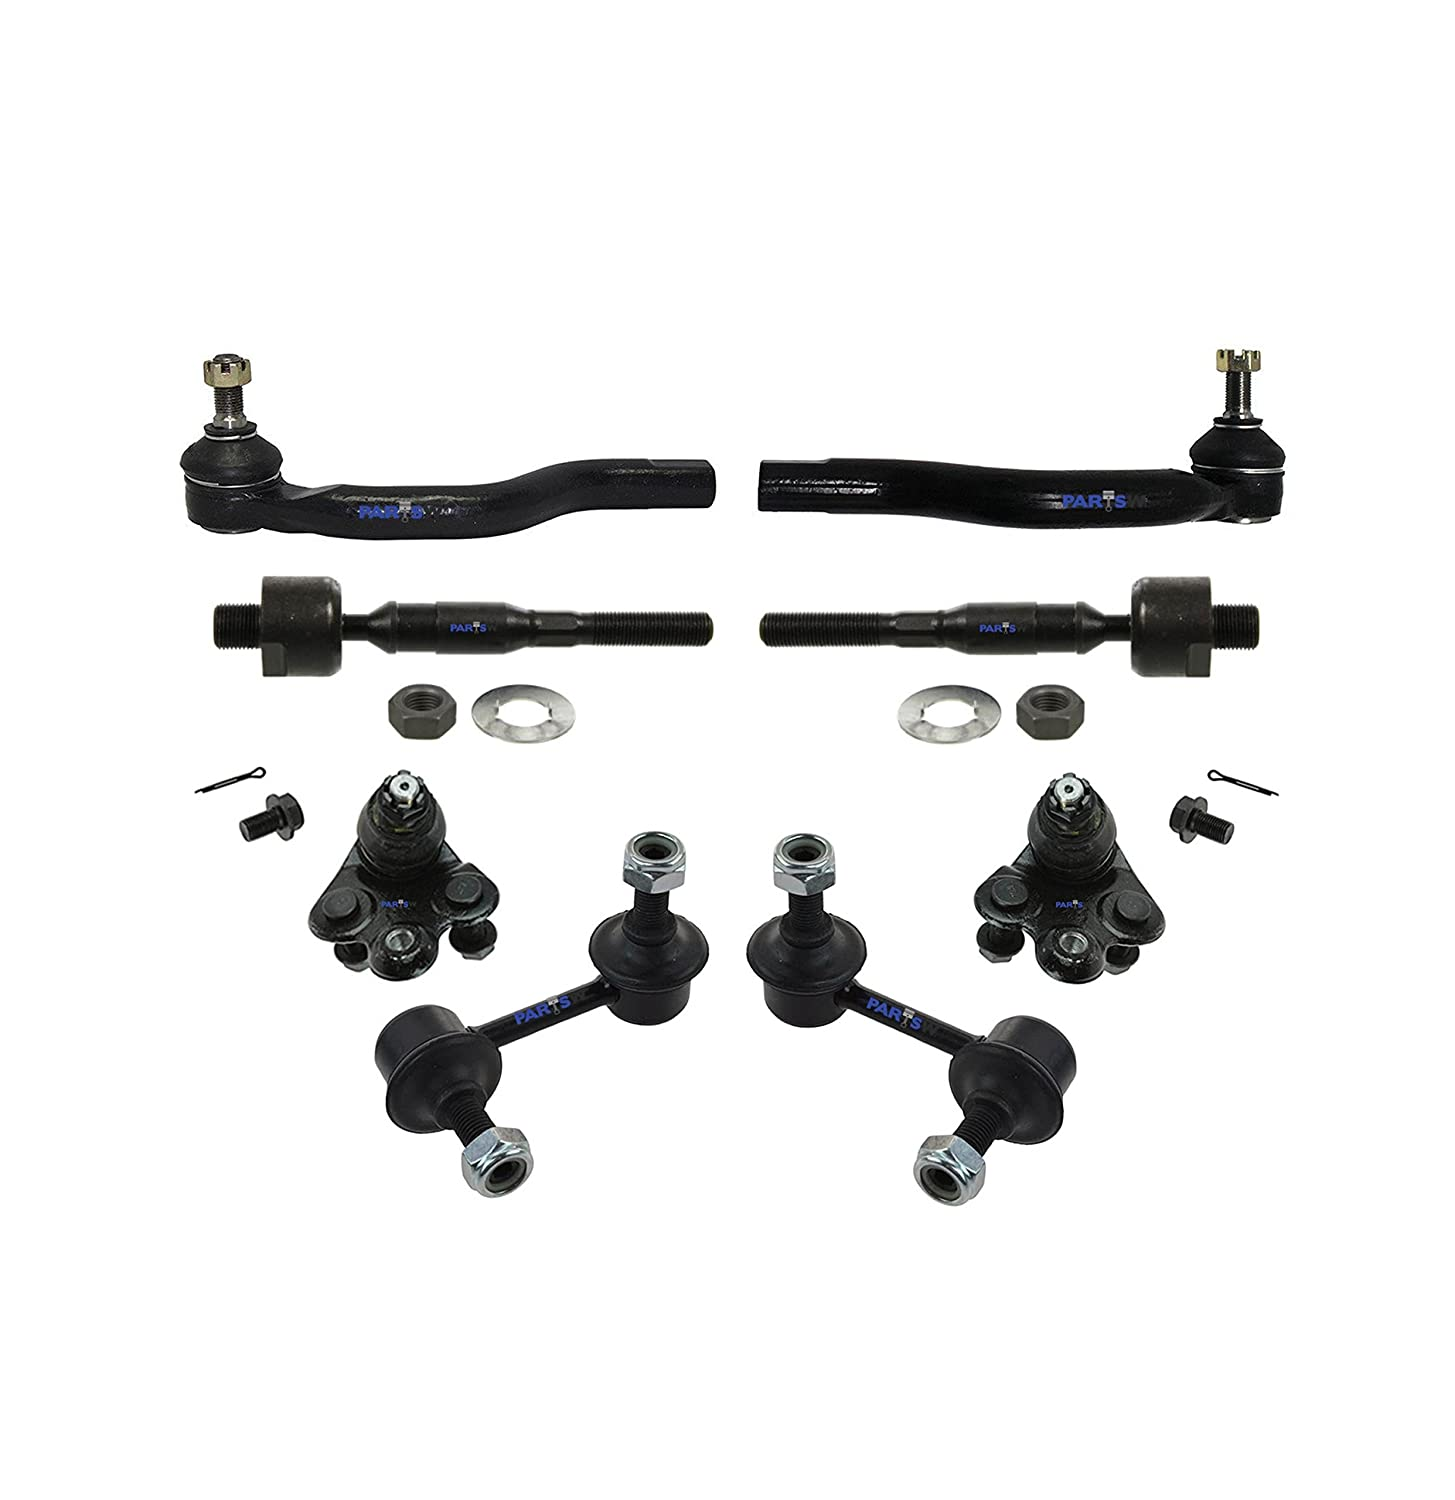 06-11 Ball Joint /& Sway Bars Left /& Right Side 1.8L L4 Engine Models Inner /& Outer Tie Rod PartsW 8 Pc New Front Suspension Kit for Honda Civic